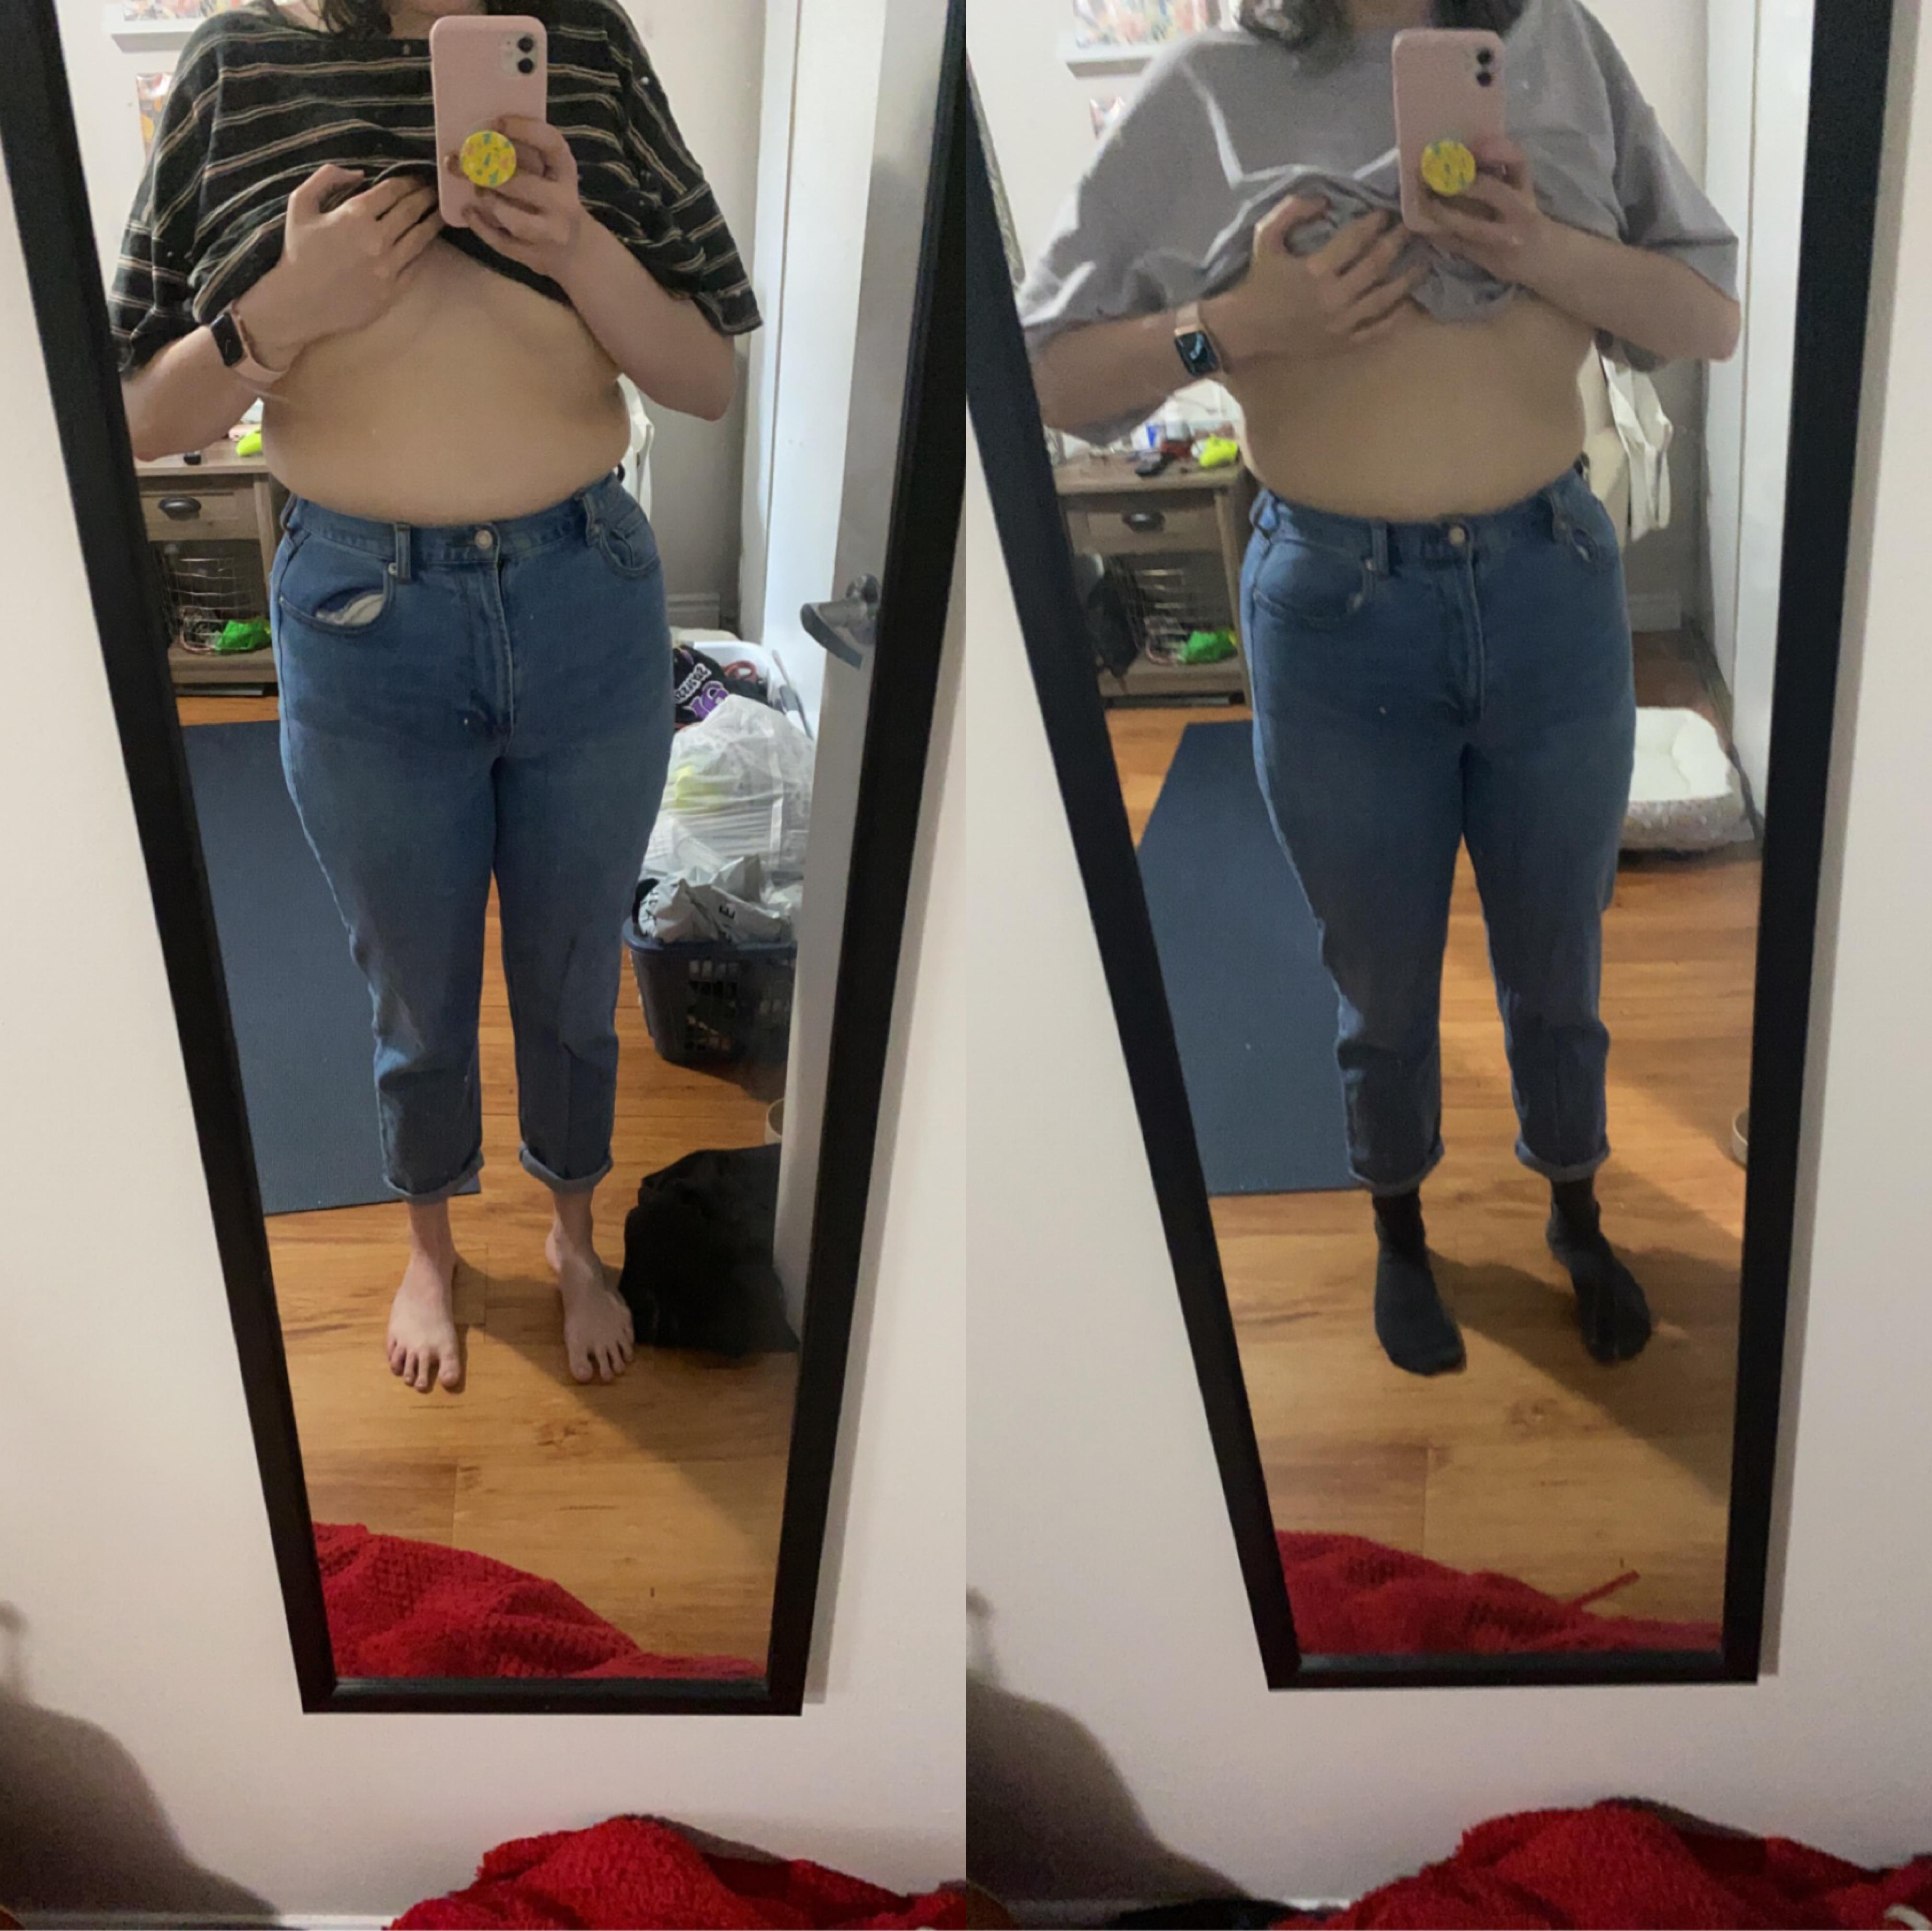 5 feet 8 Female Before and After 7 lbs Weight Loss 185 lbs to 178 lbs